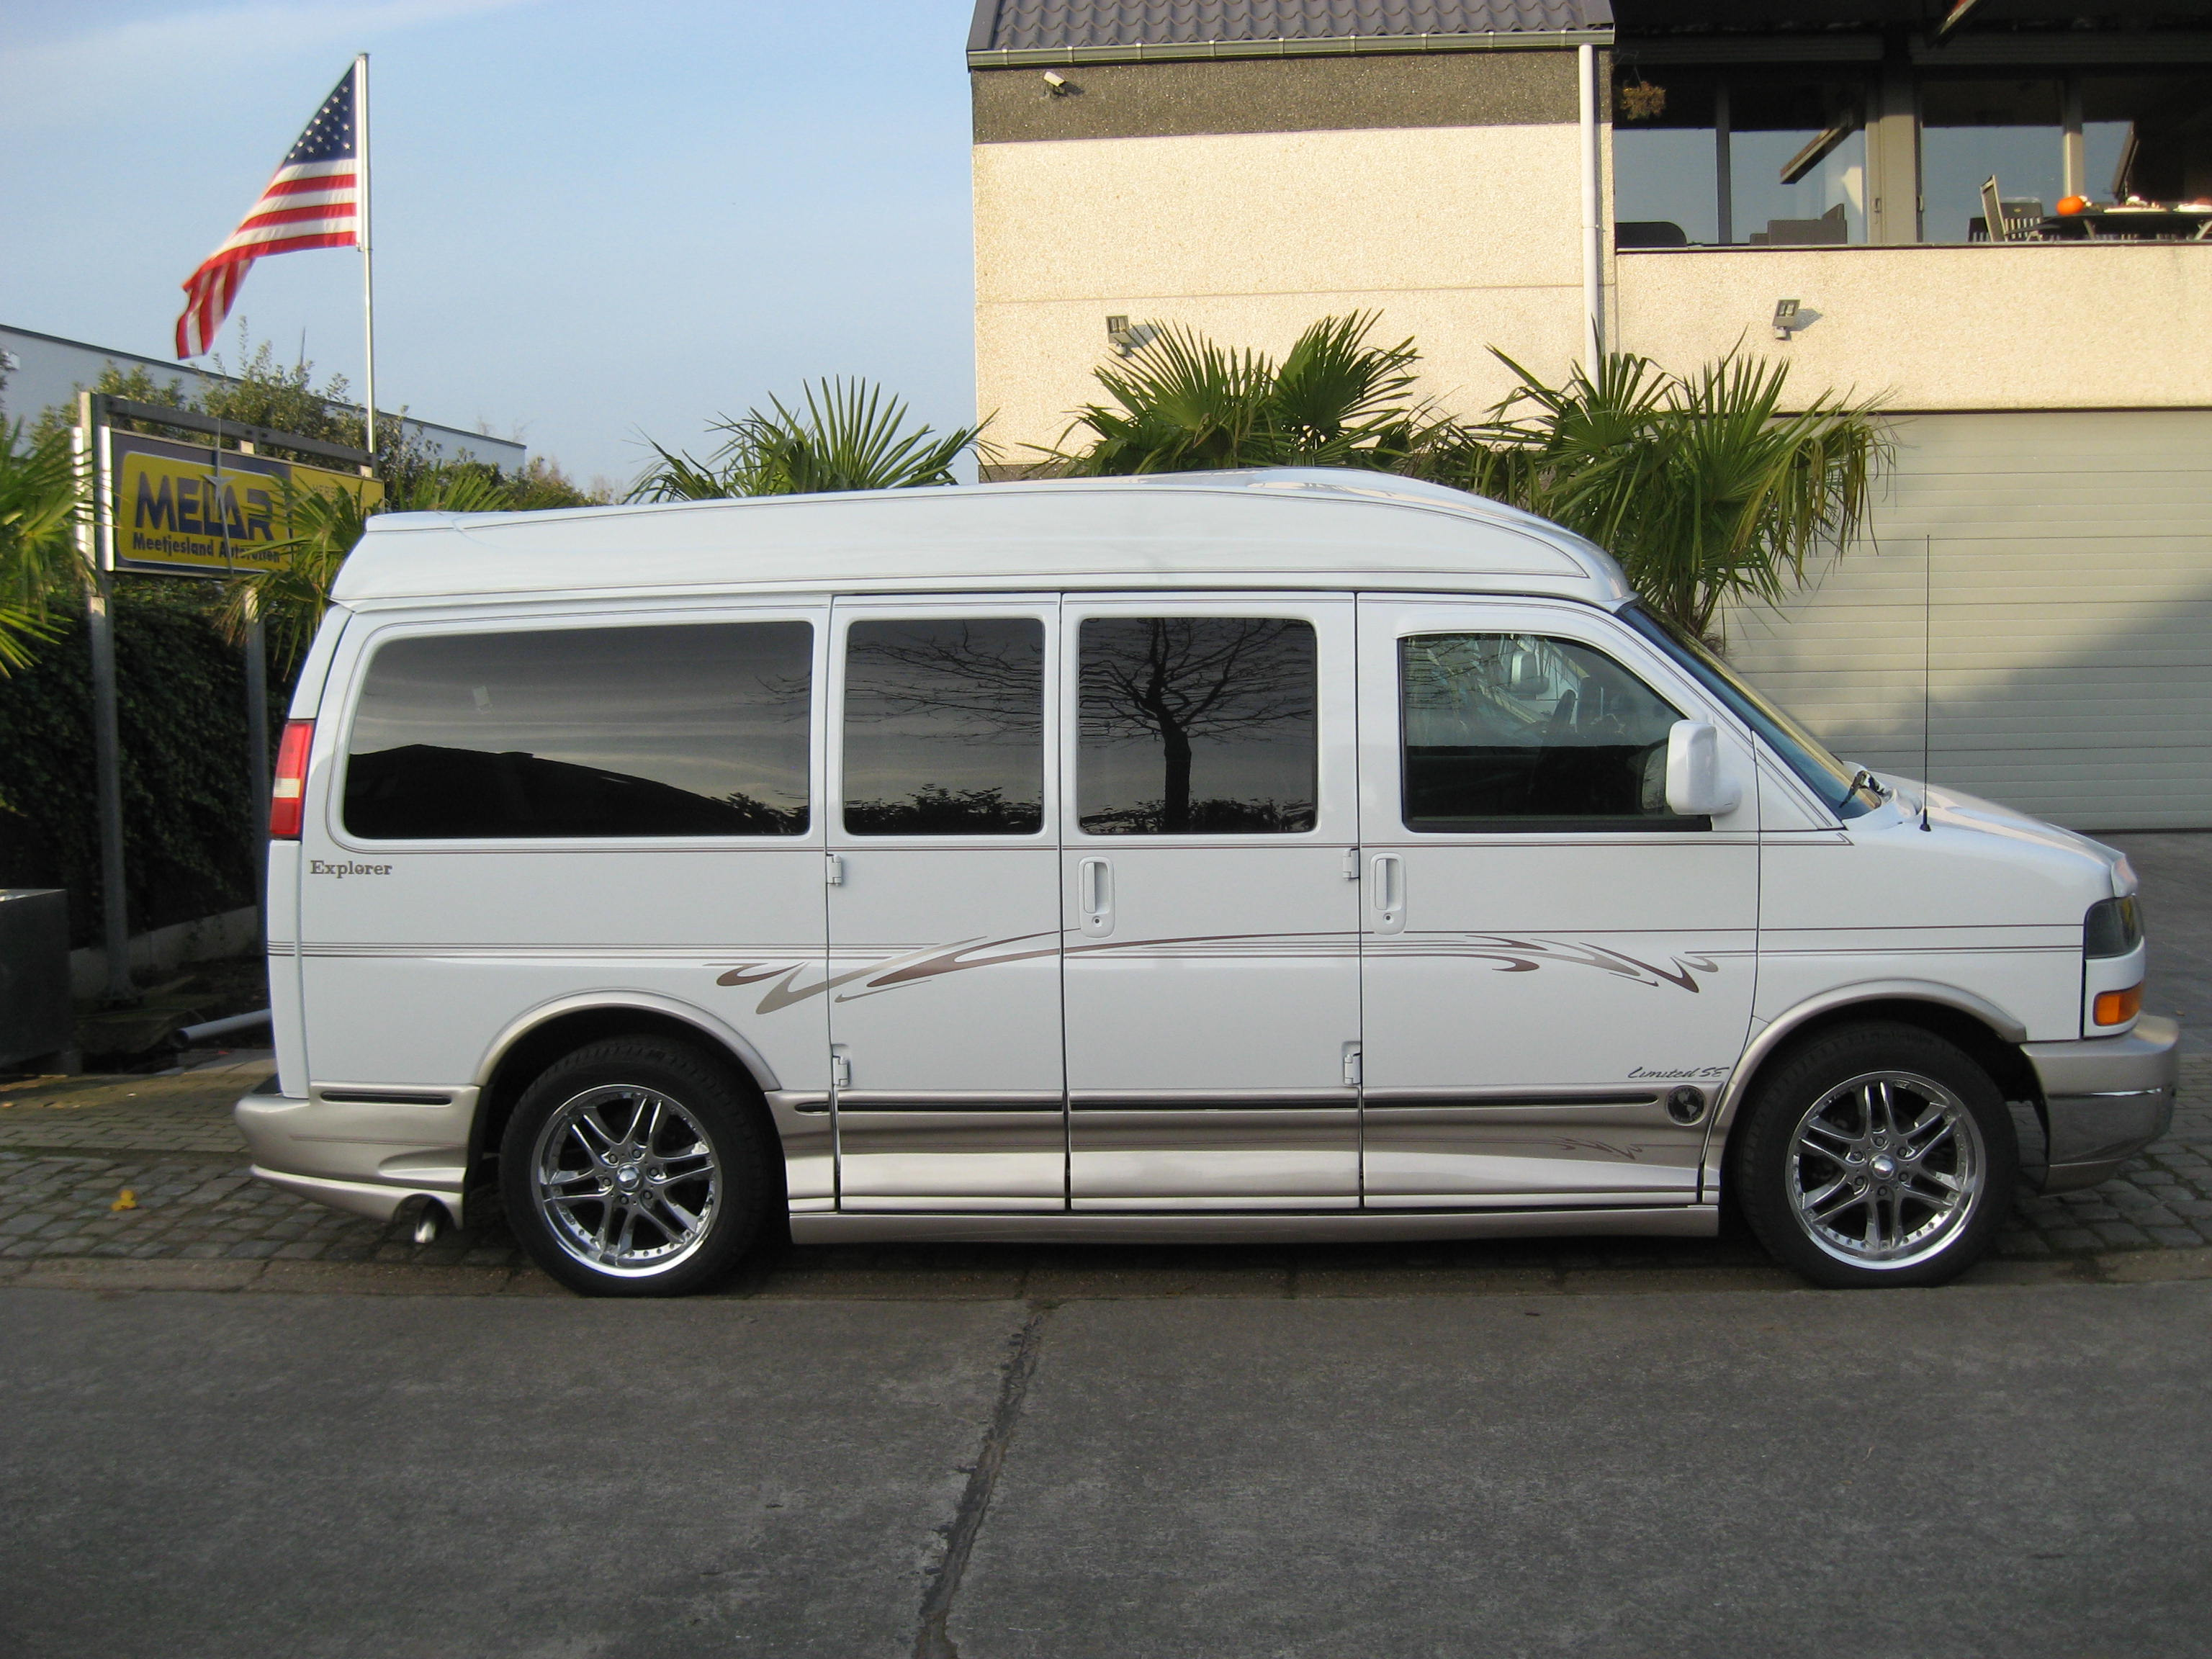 Gmc Savana 2006 Explorer Www Americanangelautomotive Be